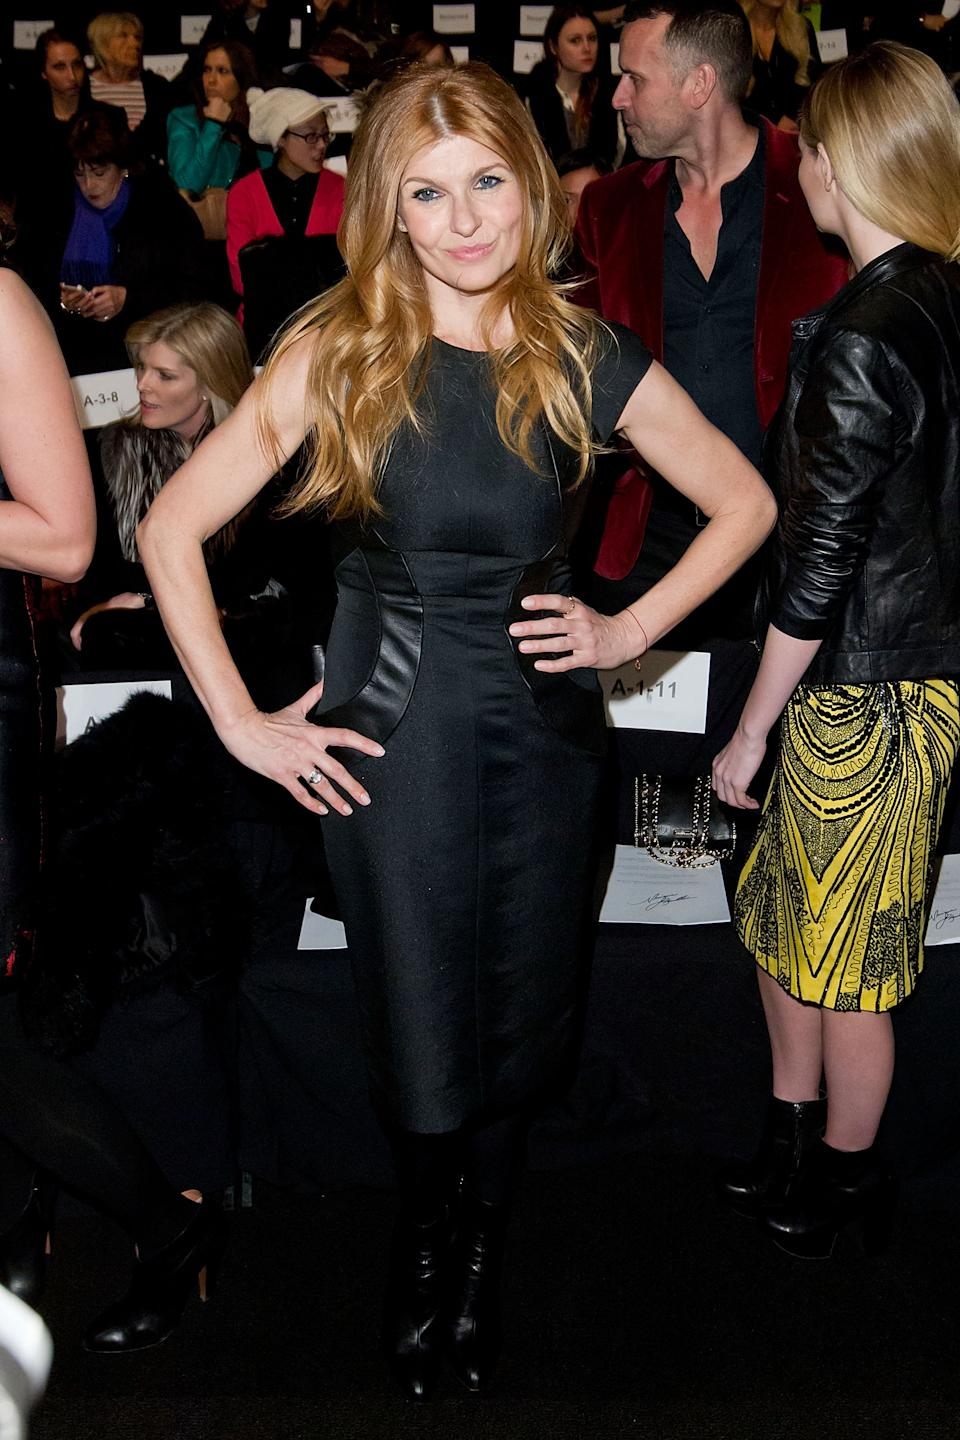 Actress Connie Britton attends the Fall 2013 Monique Lhuillier Runway Show, on Saturday, Feb., 9, 2013 in New York. (Photo by Ben Hider/Invision/AP)